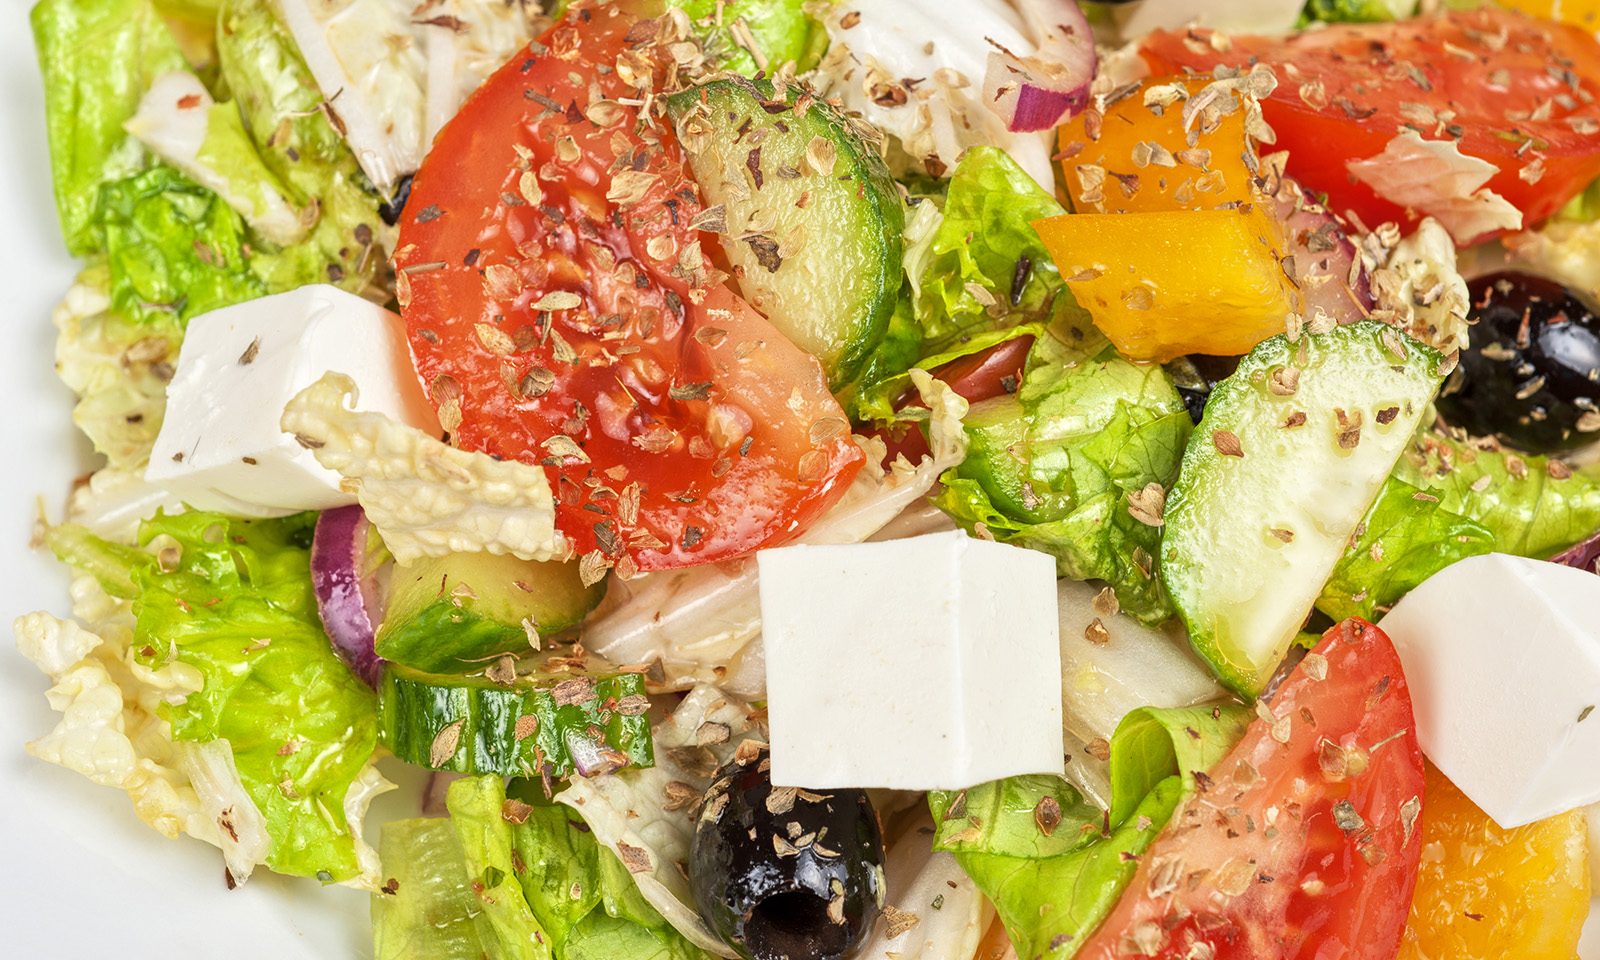 delicious-salad-all-about-the-mediterranean-diet-and-its-benefits-main-image